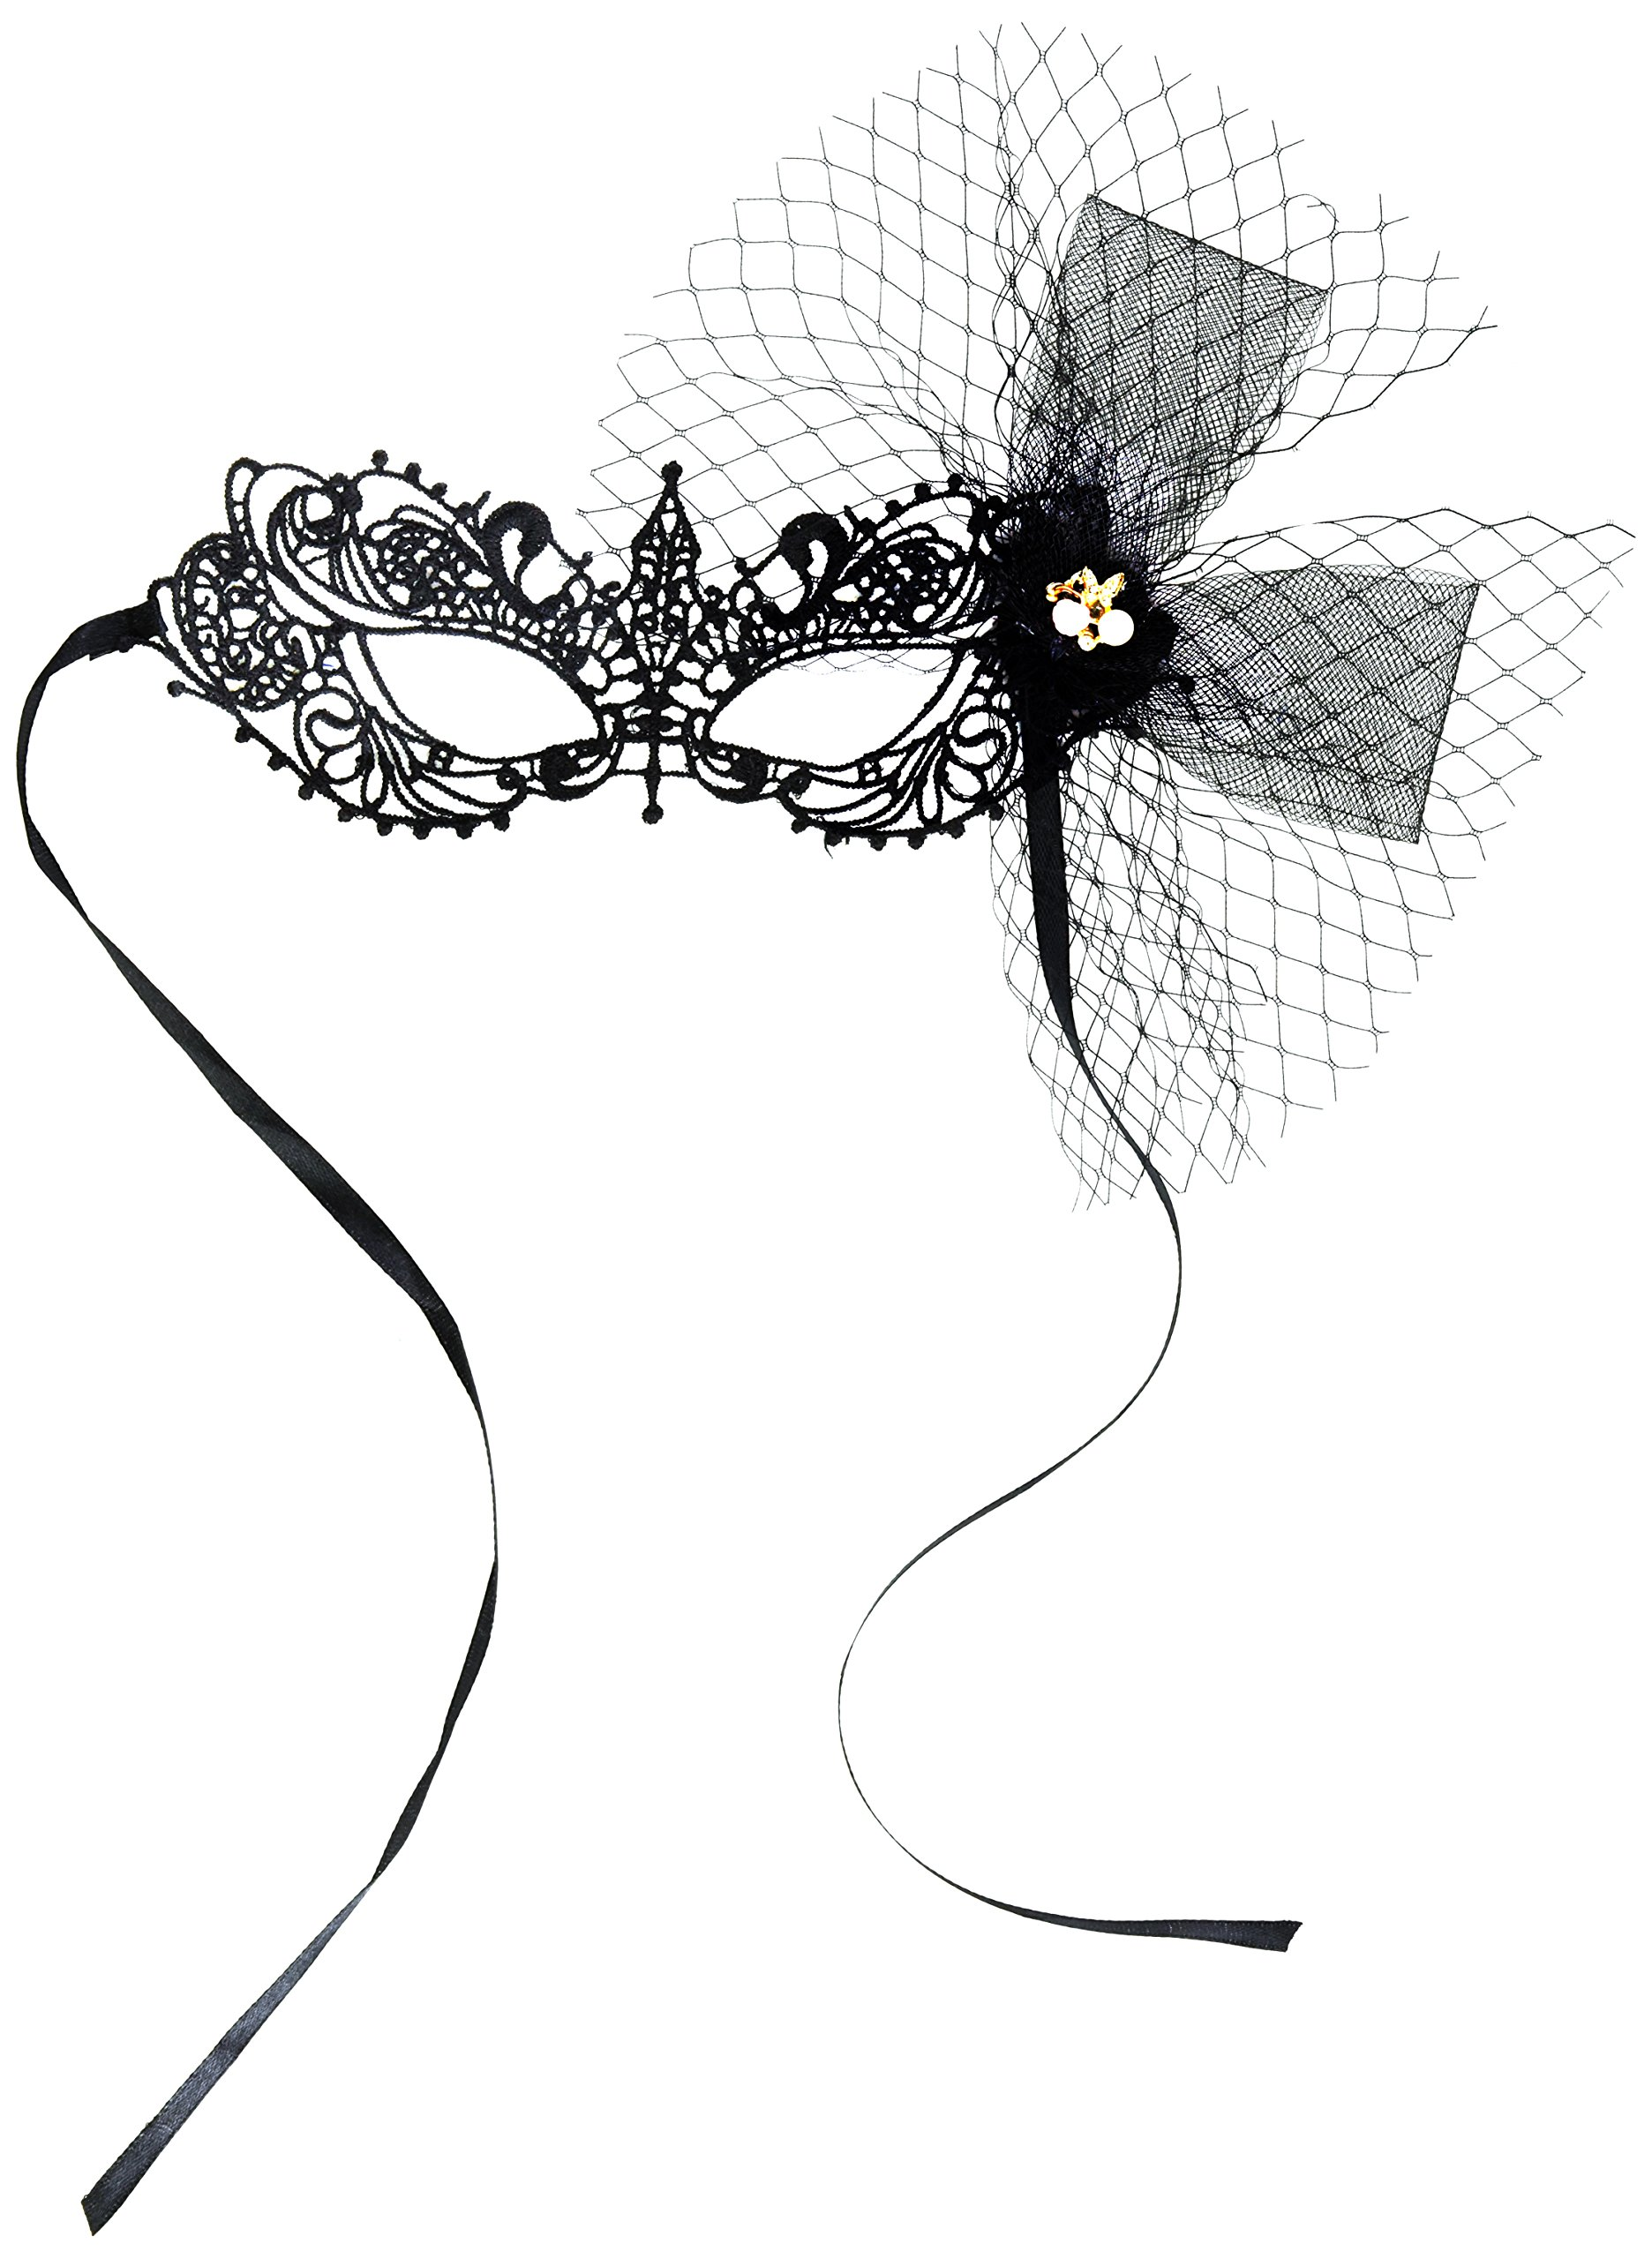 Meiliy Women Lace Venetian Masquerade Mask with Rhinestones for Party Ball Prom Mardi Gras Wedding